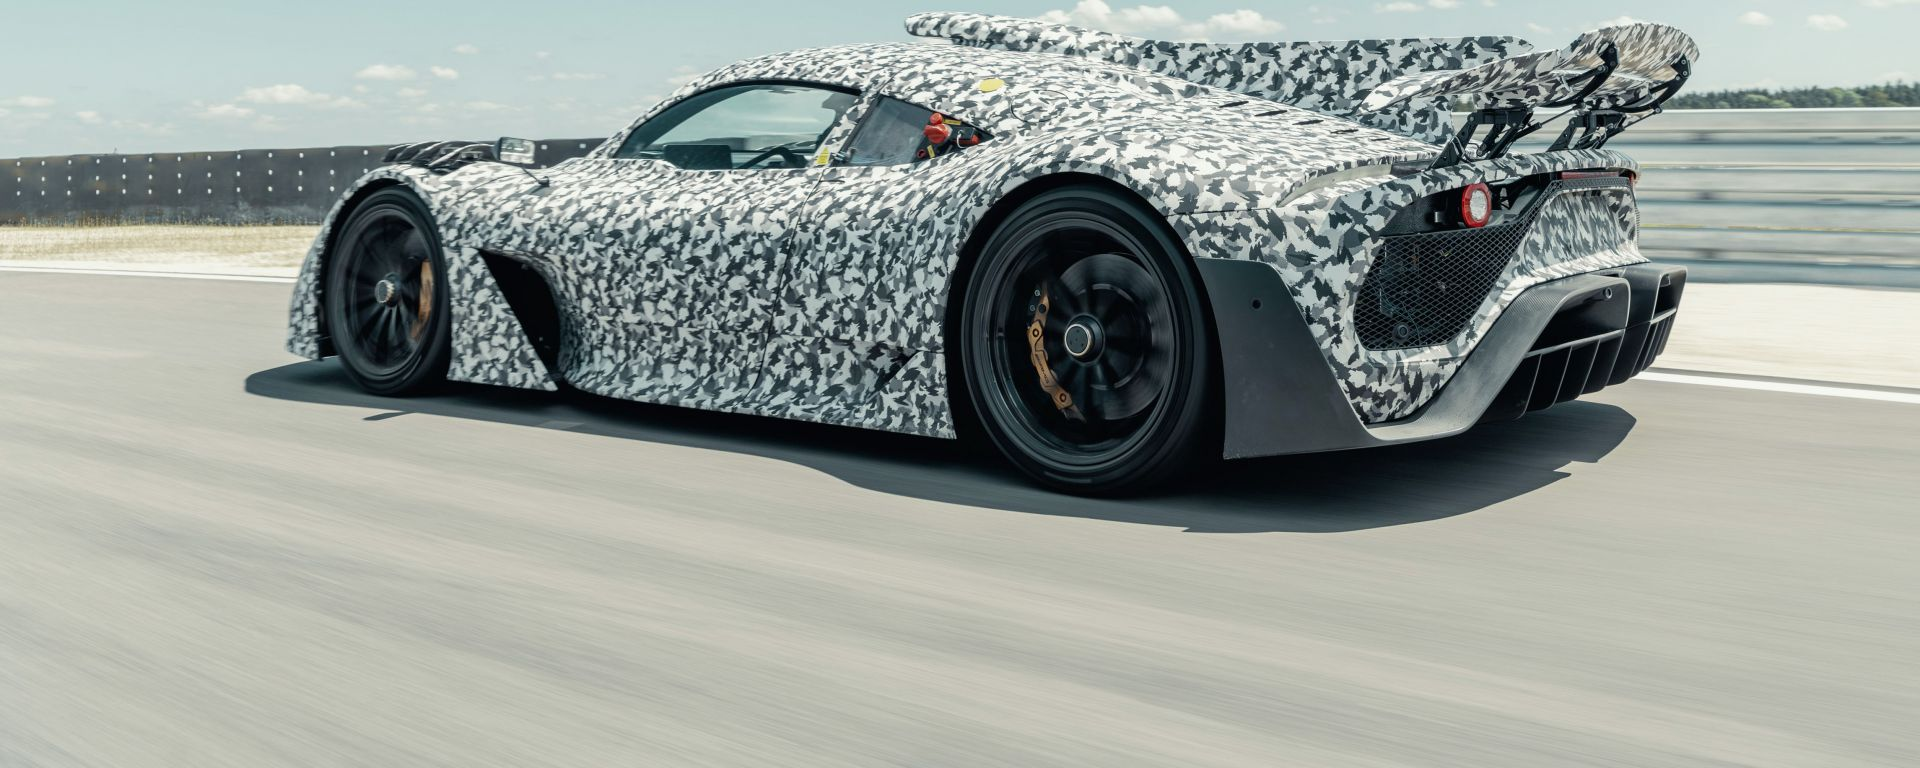 Mercedes-AMG Project One: il 3/4 posteriore